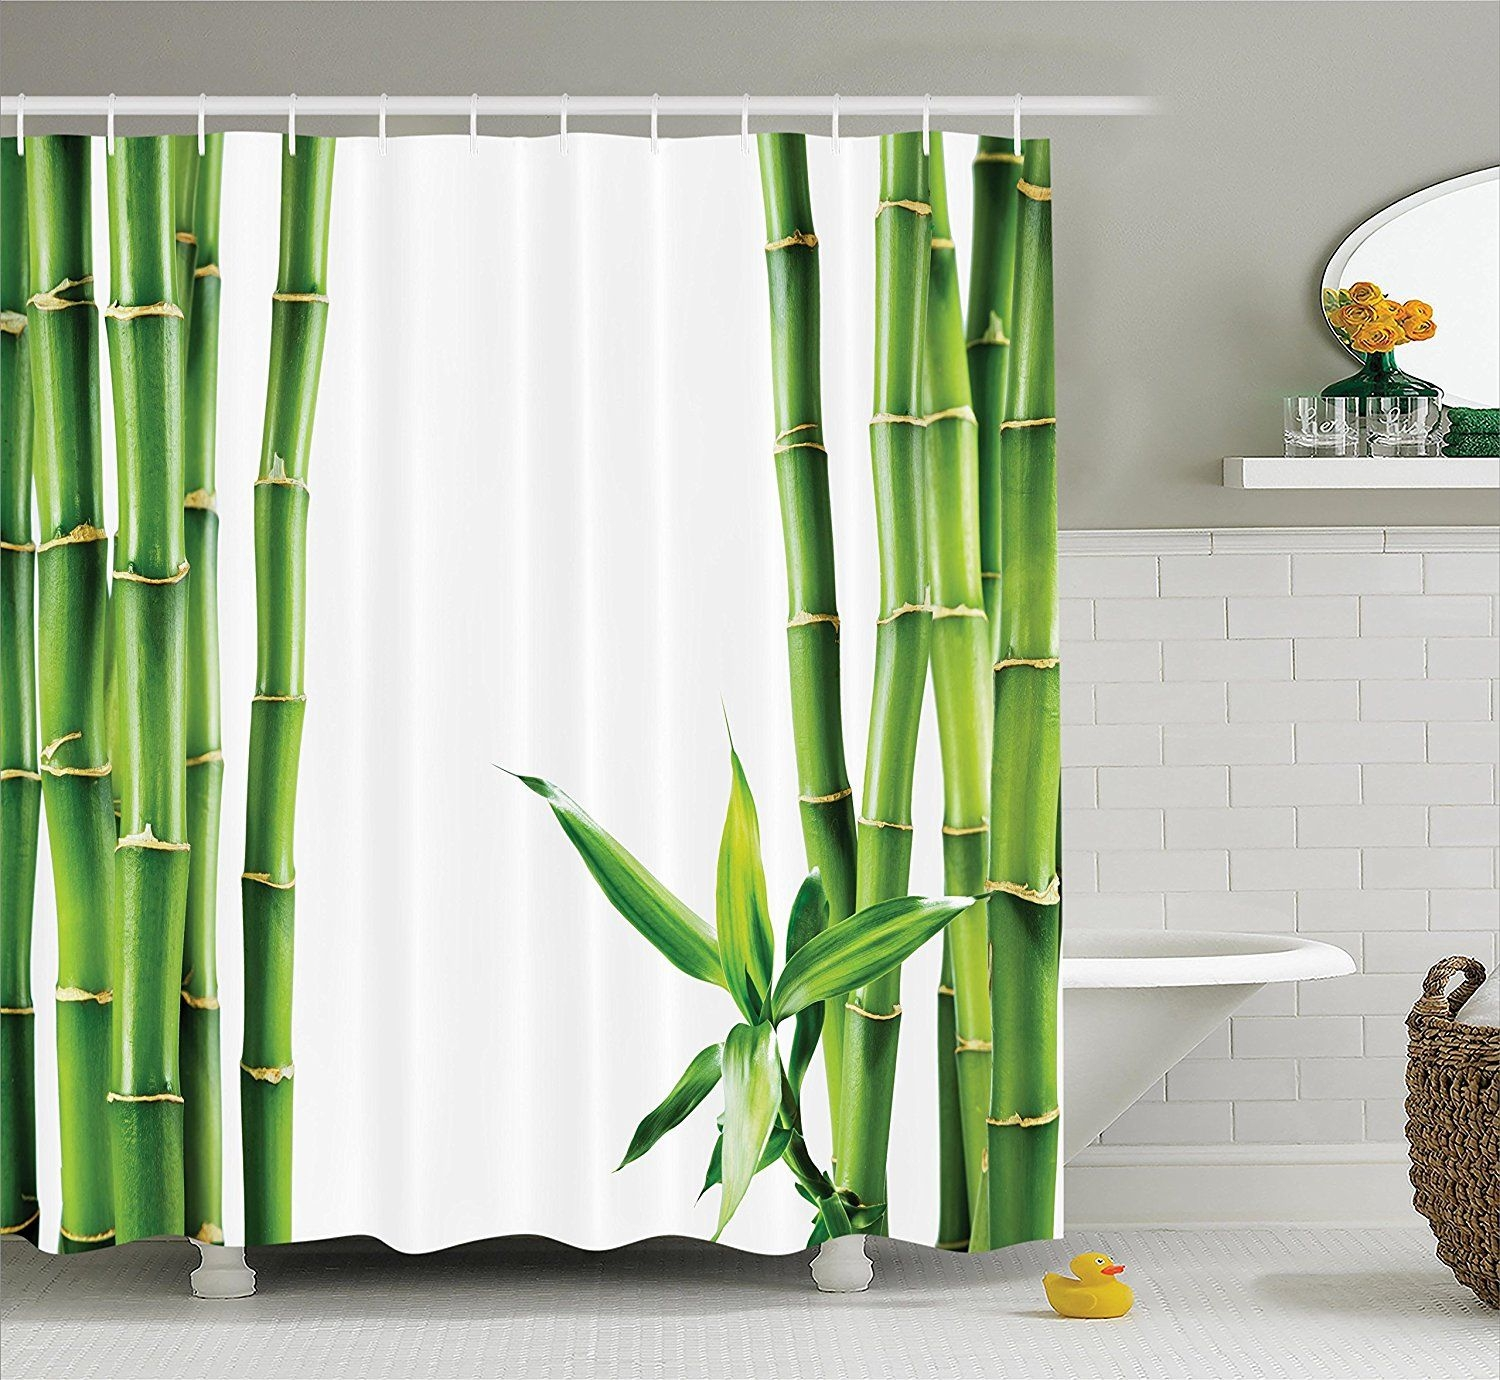 Asian Shower Curtain Decor Bamboo Board Stalk Tropics Plants Greenery Natural Lush Polyester